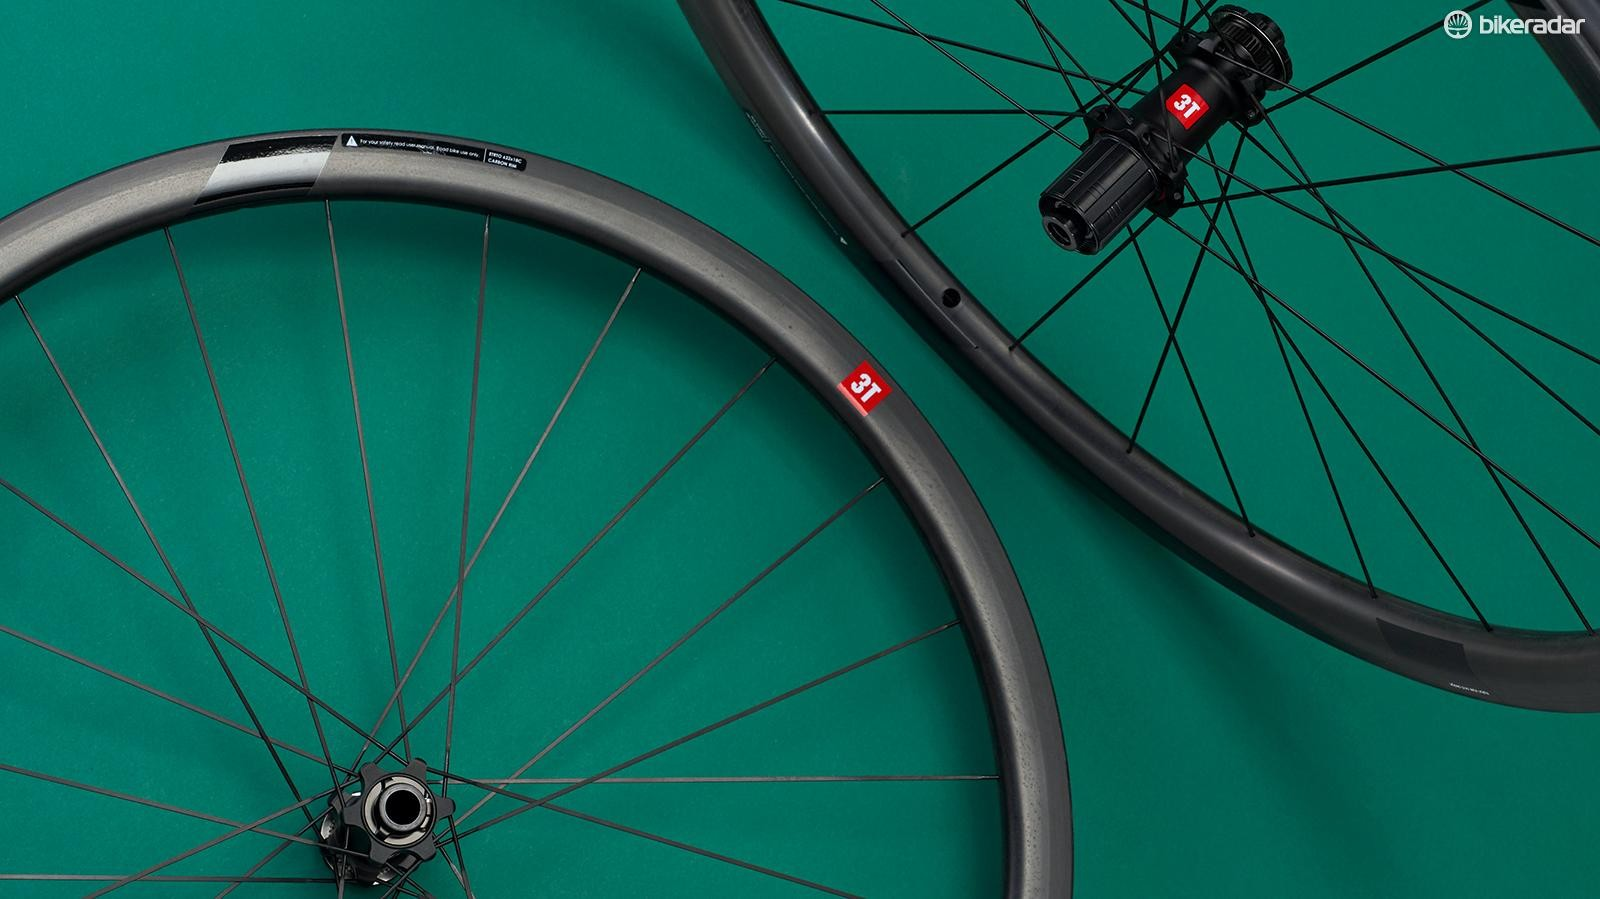 3T's Discus C35 Team Stealth wheelset is aptly named –it makes its case quietly but very effectively out on the road